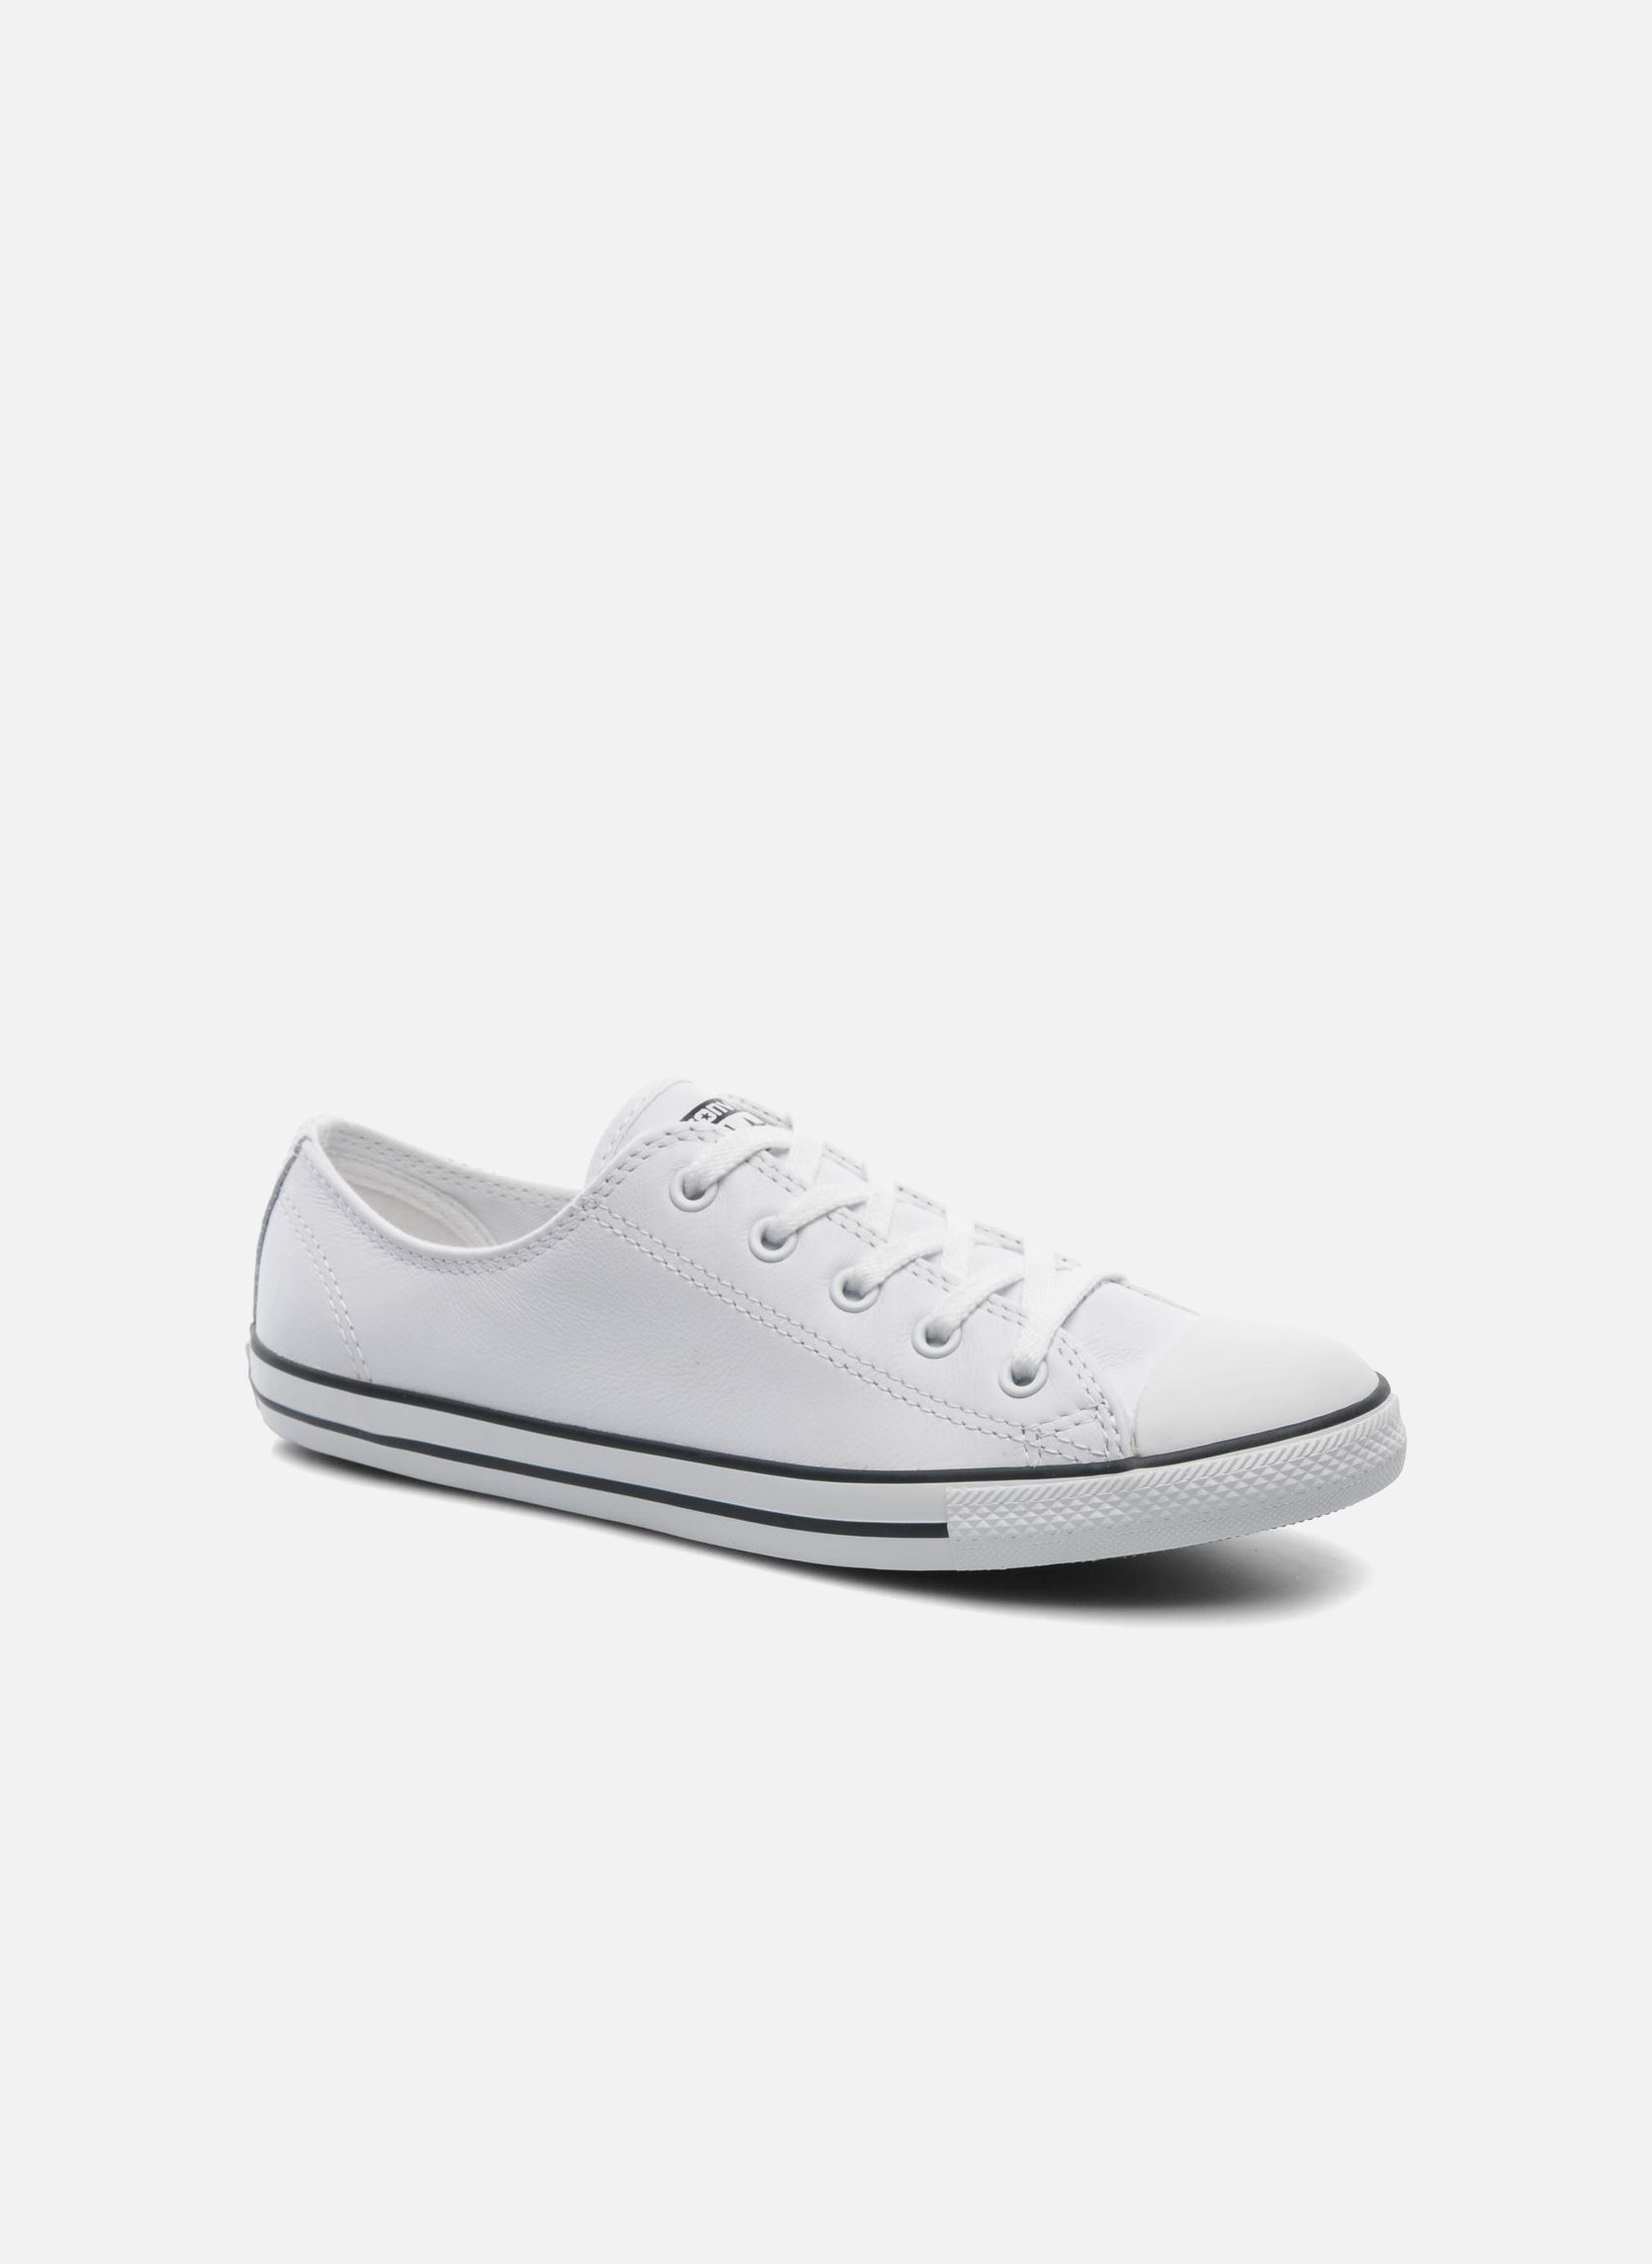 Star Dainty Cuir Ox W Trainers In White